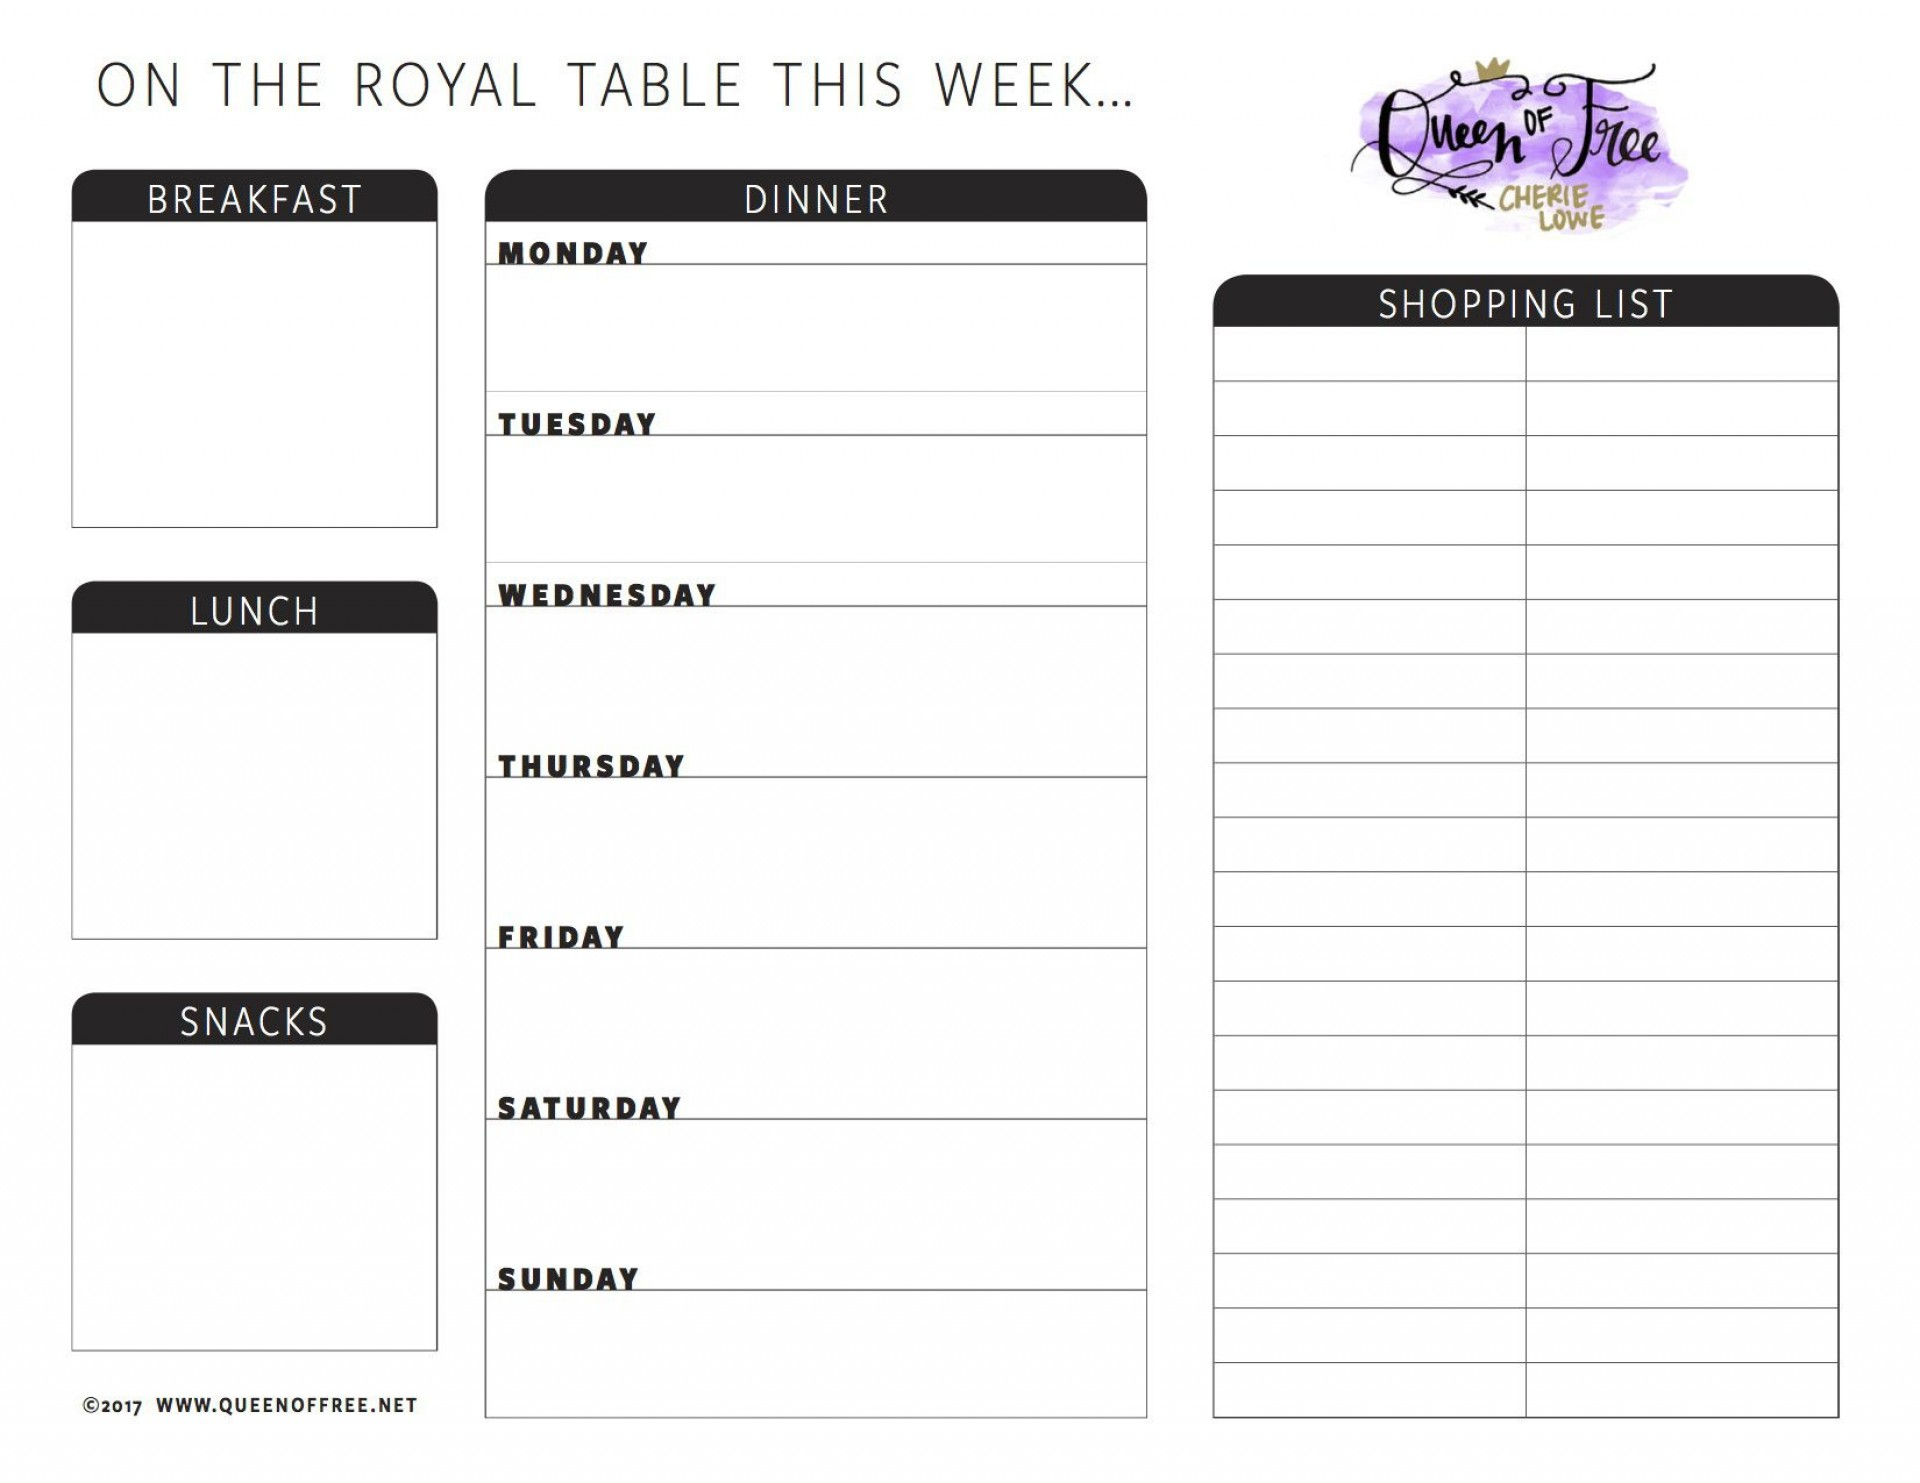 008 Best Free Food Planner Template Image  Printable Weekly Meal With Grocery List Diary Download Editable Word1920